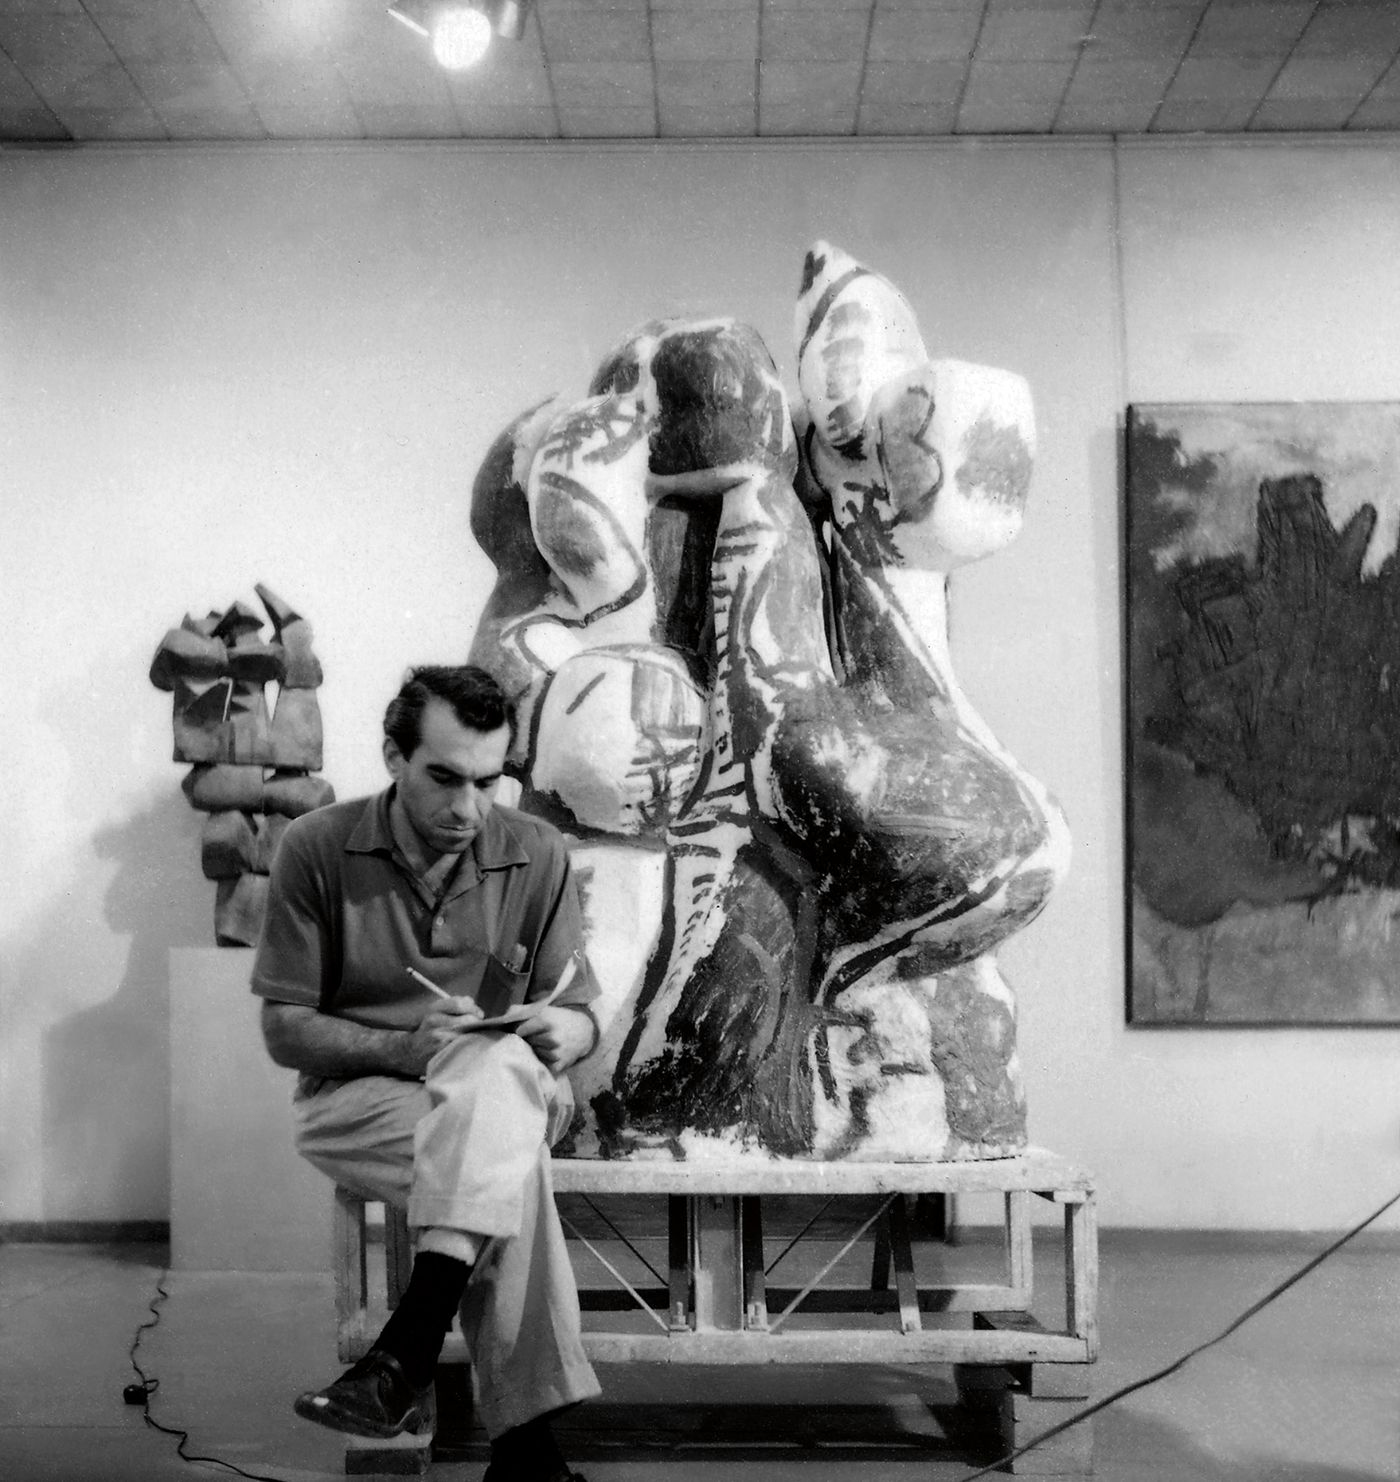 Glenn Adamson investigates the miraculous creation of a monolithic totem to 1950s American craft, made at the apex of Voulkos' breakthrough years.